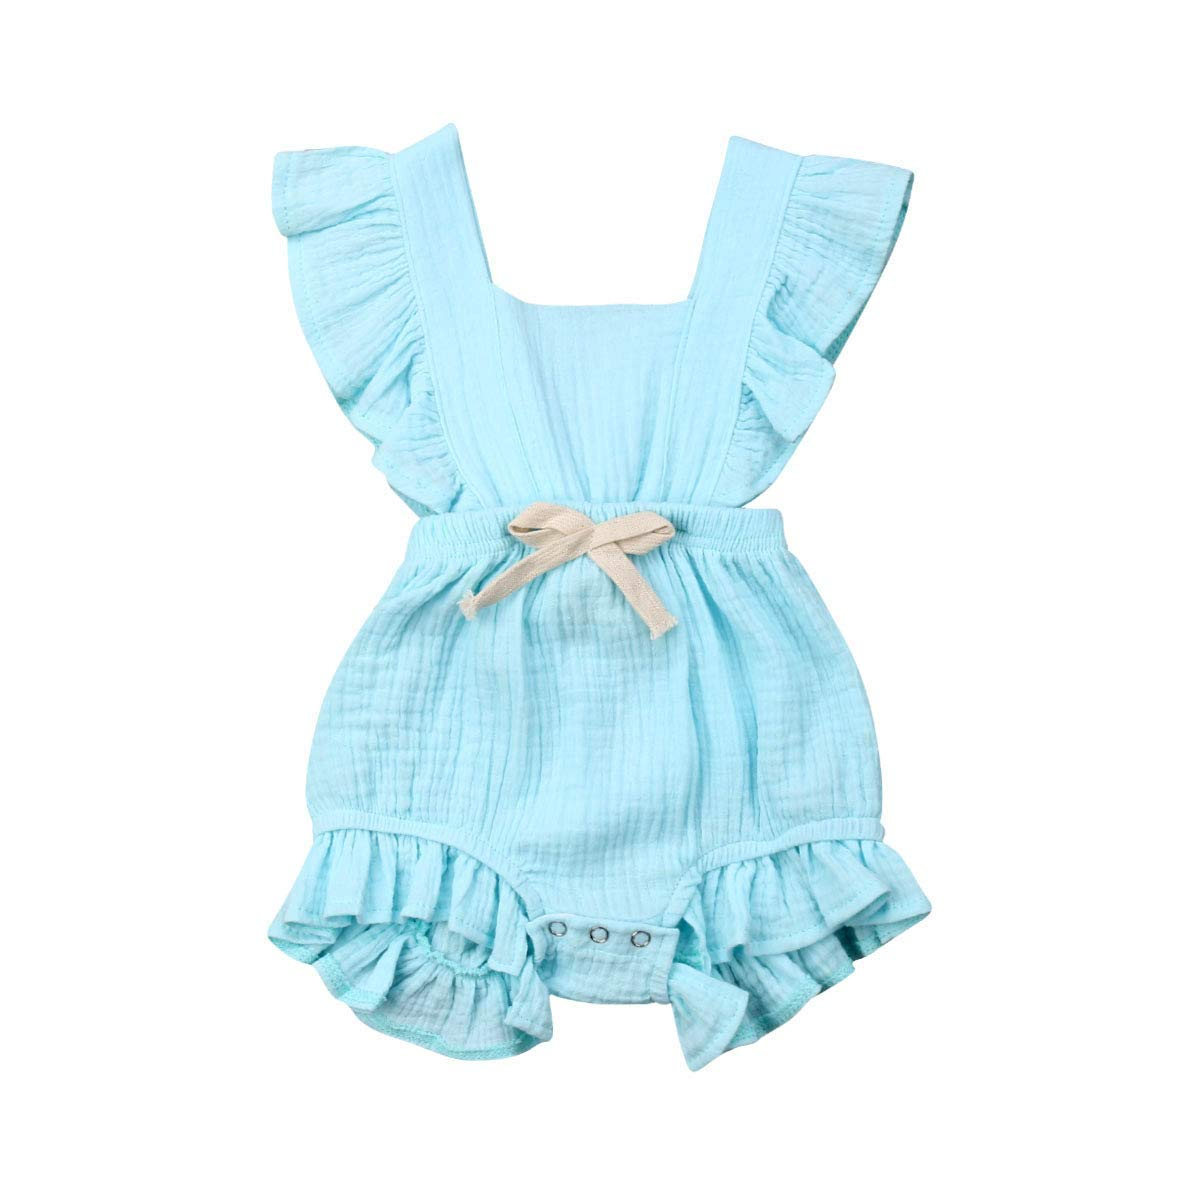 C&M Wodro Infant Baby Girl Bodysuit Sleeveless Ruffles Romper Sunsuit Outfit Princess Clothes (Bright Blue, 0-6 Months)